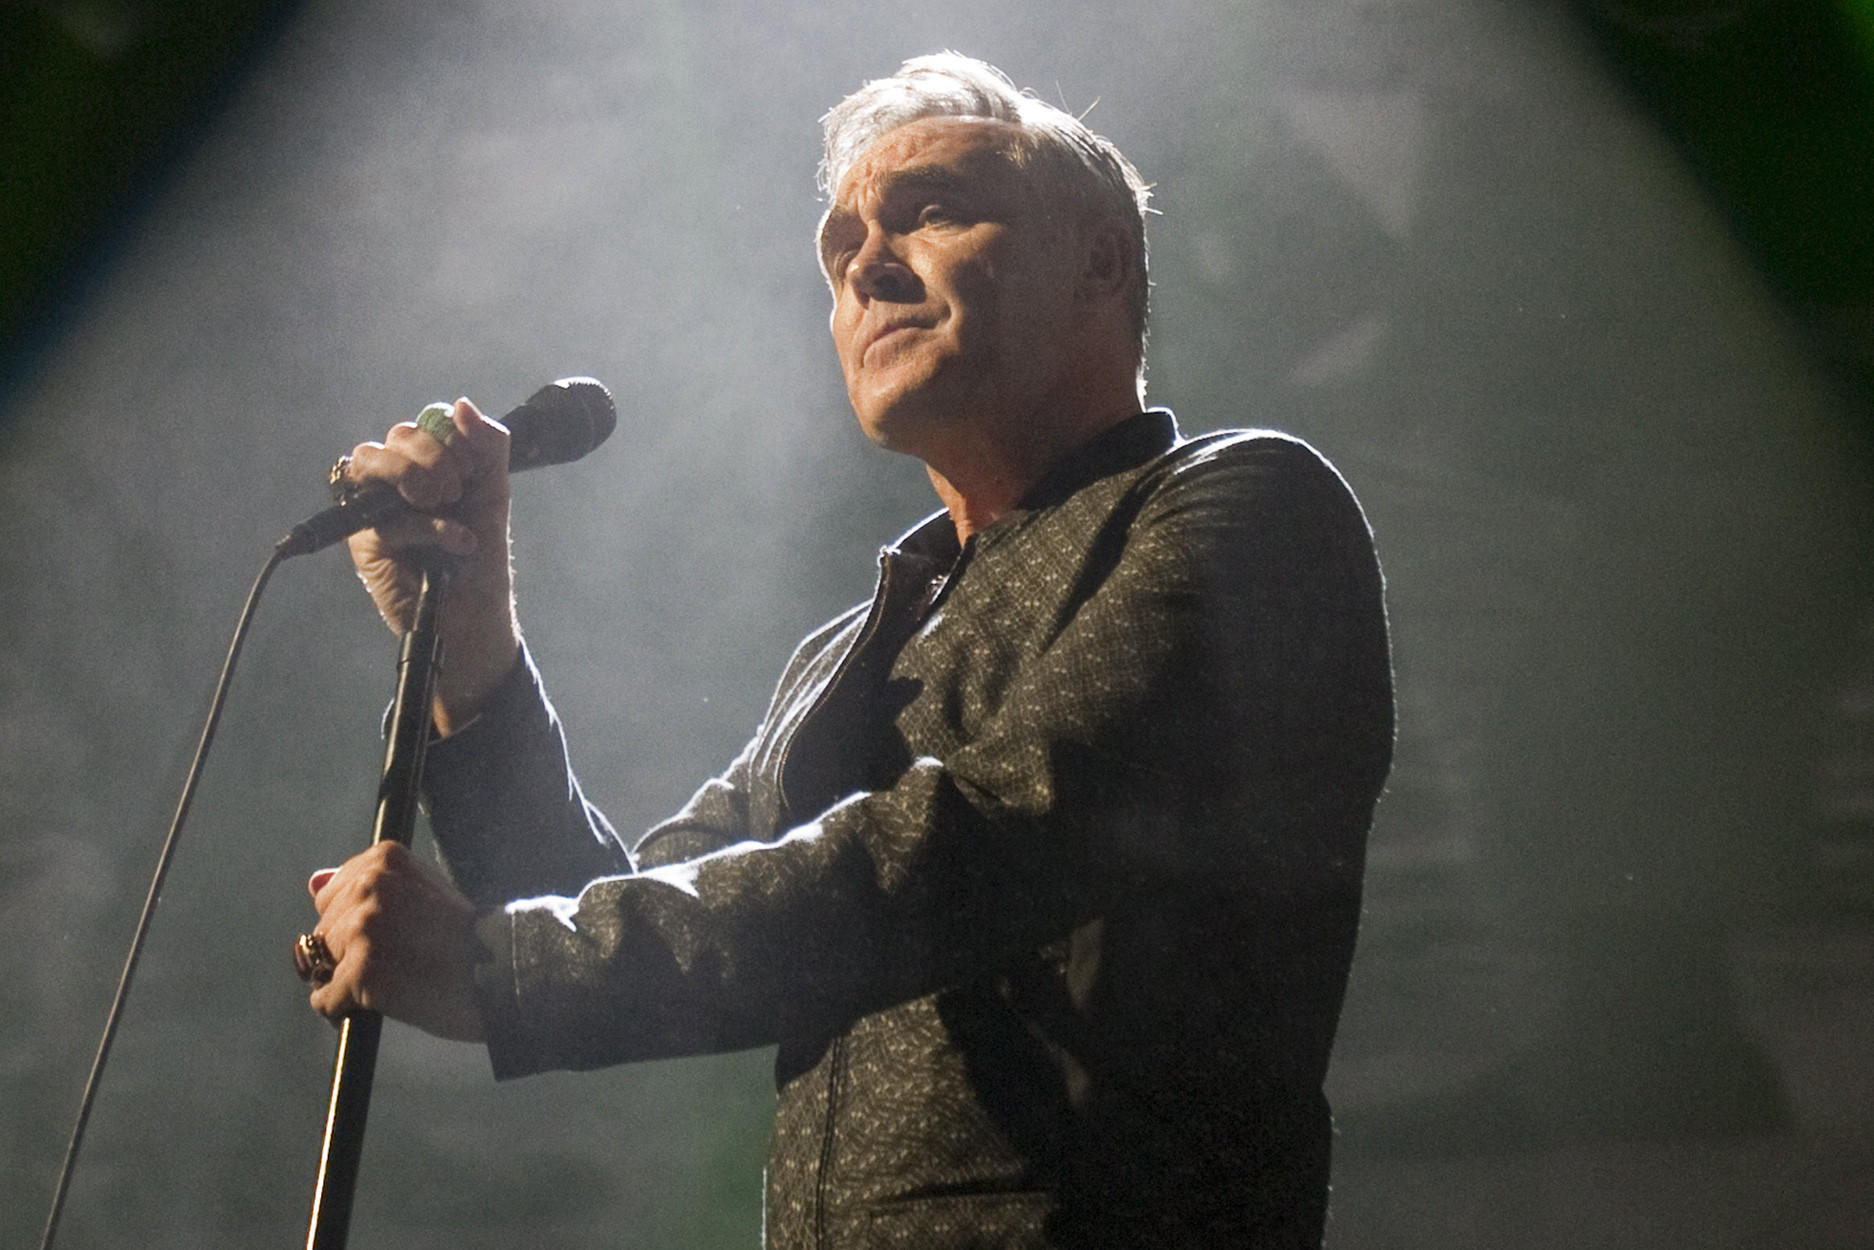 Former Smiths frontman Morrissey has canceled his U.S. tour, including a show scheduled Friday for the Civic Opera House. The singer is still recovering from a respiratory infection he contracted earlier this year.